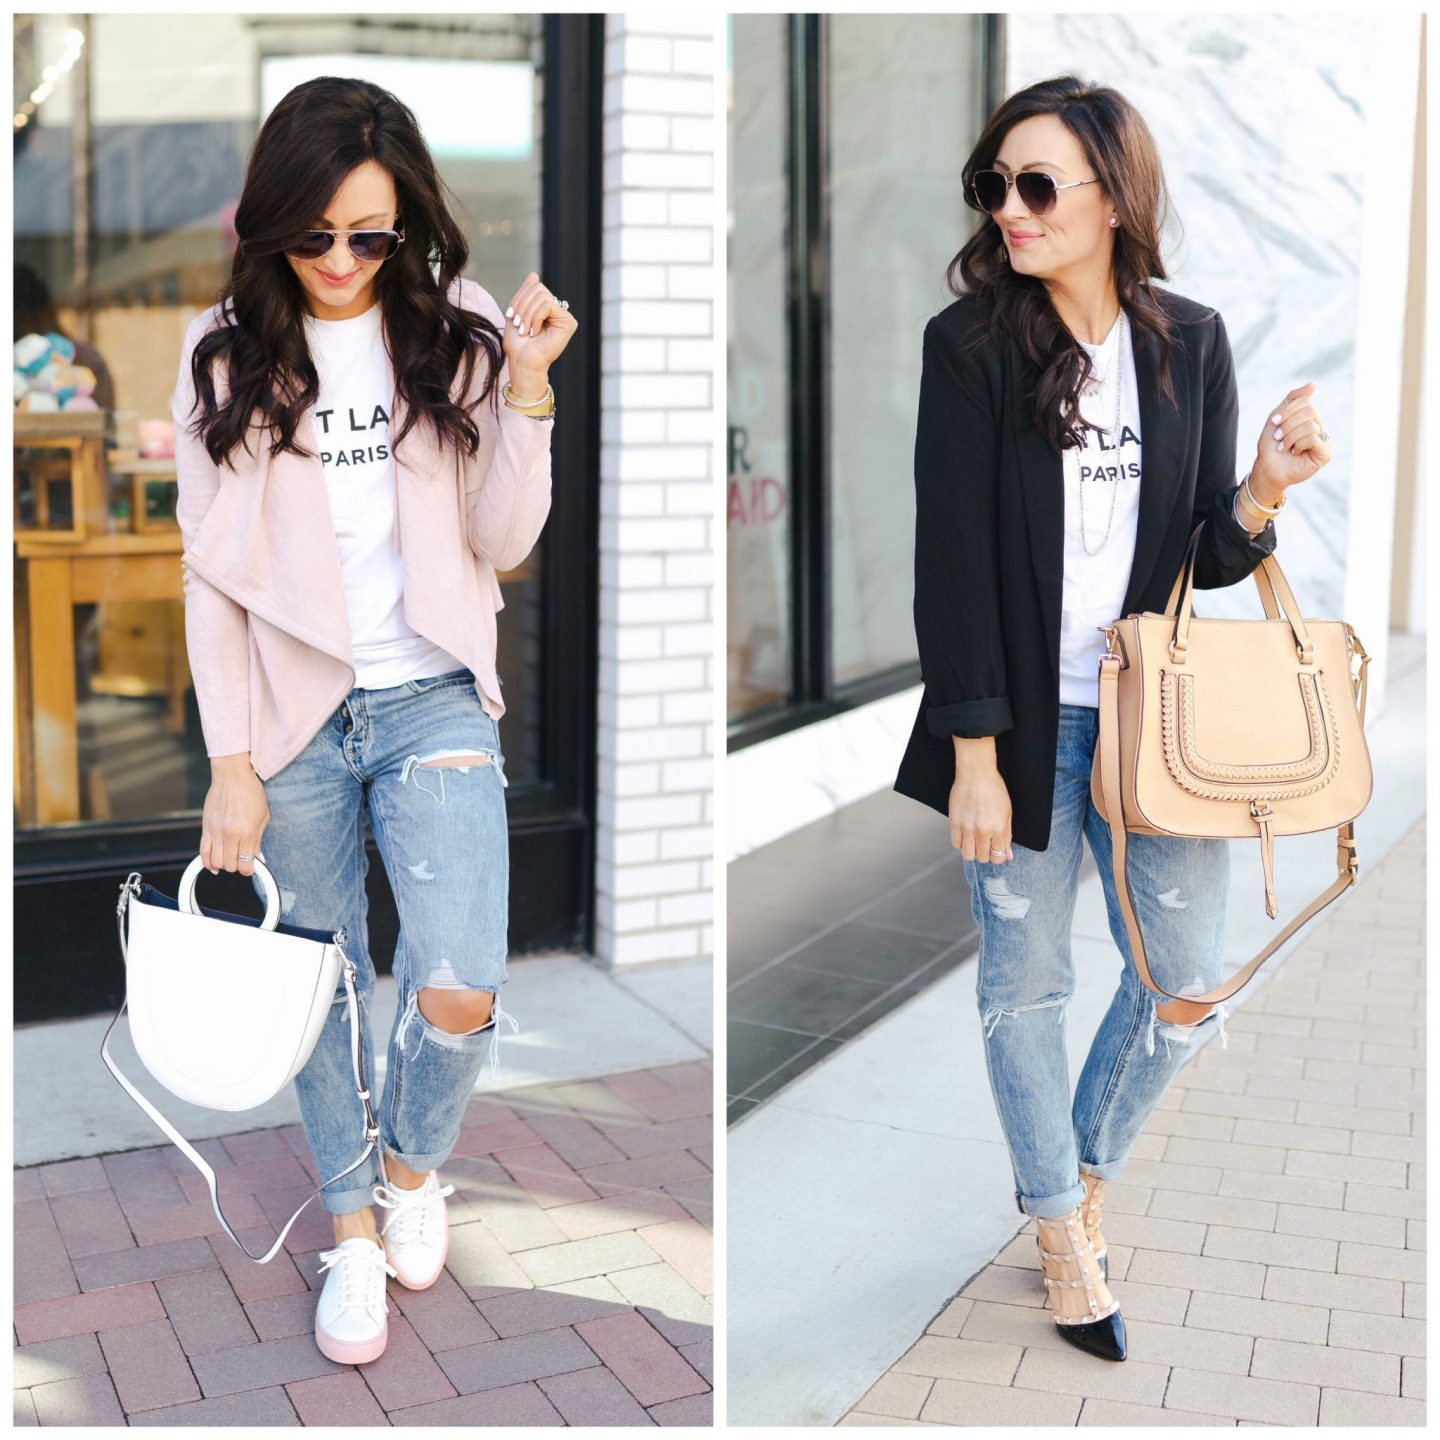 a3ea7a50 Two Ways To Style a Graphic Tee & Distressed Denim - Ashley Donielle